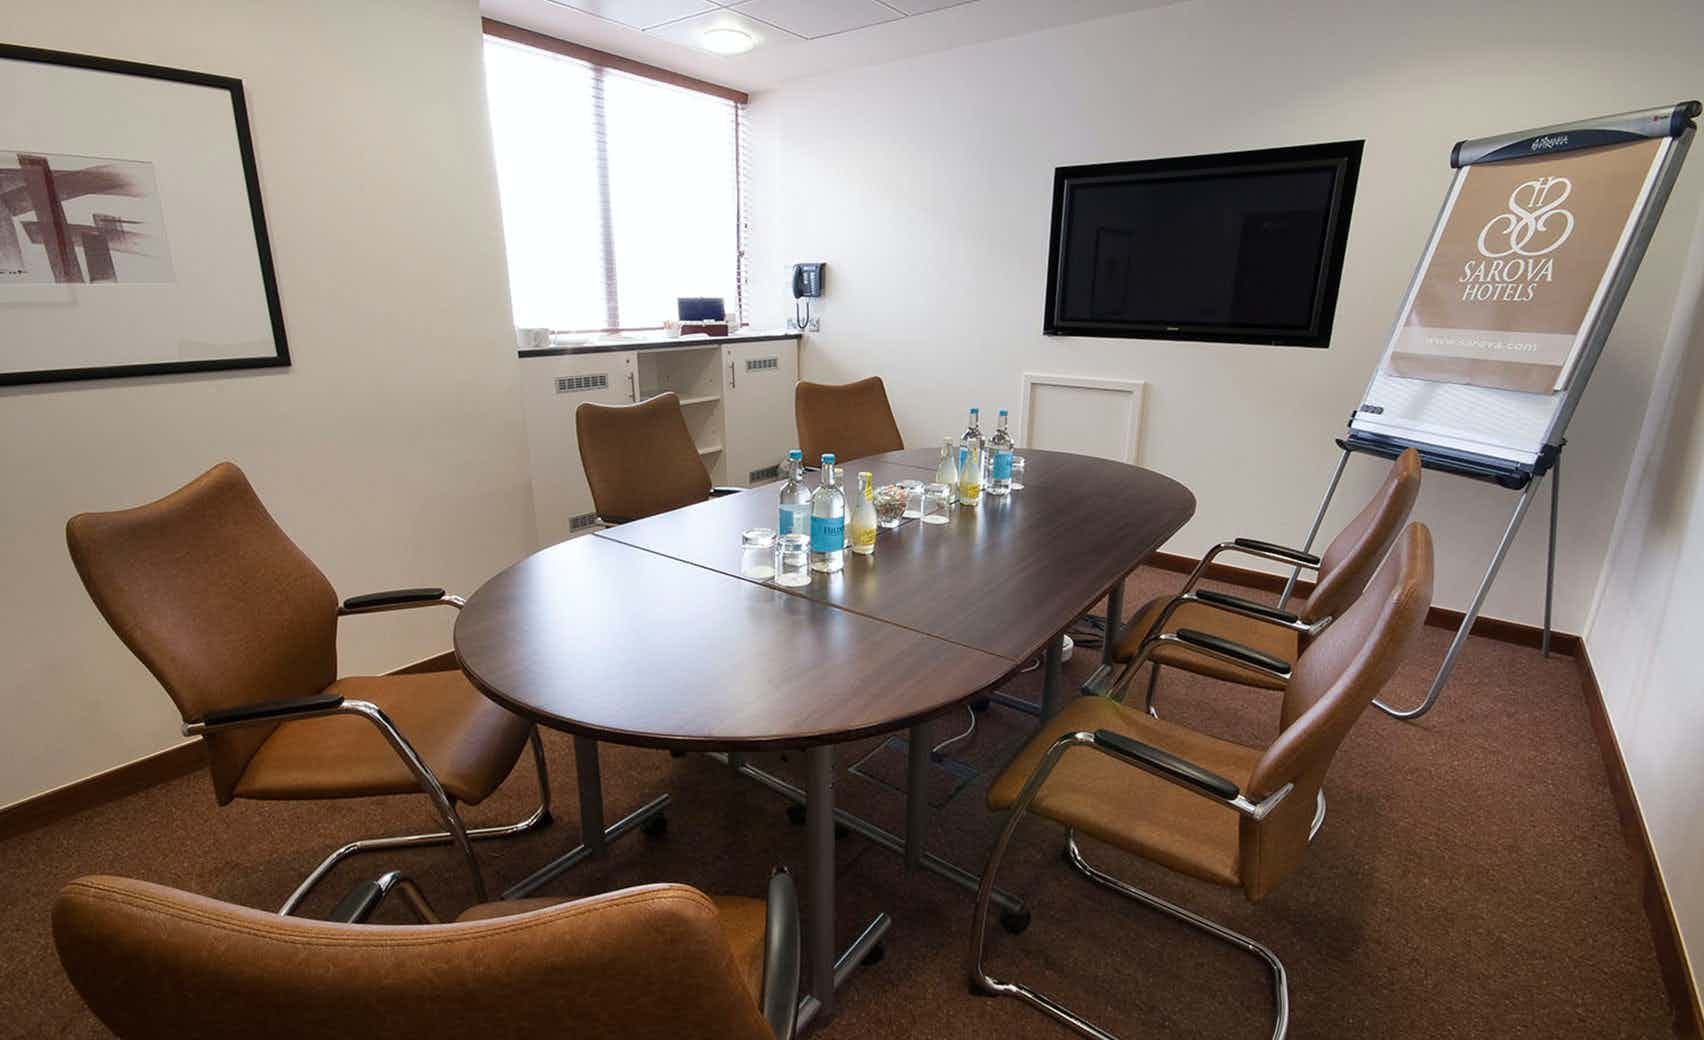 Sandringham Boardroom, Sir Christopher Wren Hotel